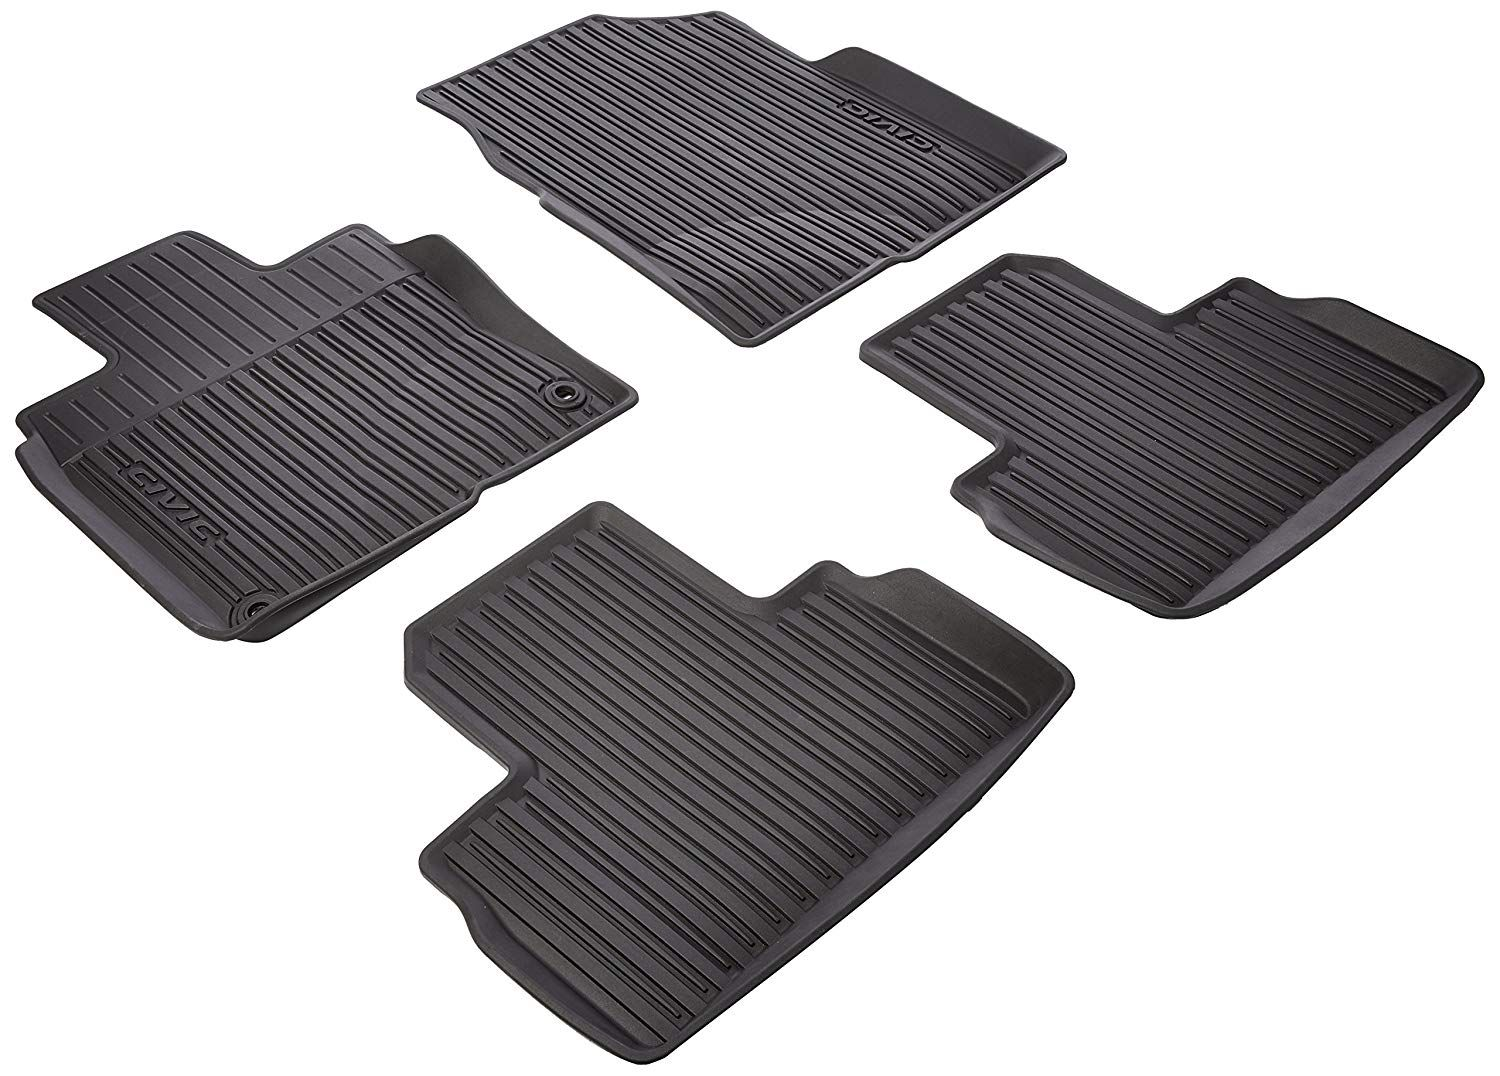 Genuine Honda 08p17 Tba 300 All Season Floor Mats High Wall Click Image To Review More Details This Is An Affil Floor Mats High Walls Expensive Sports Cars